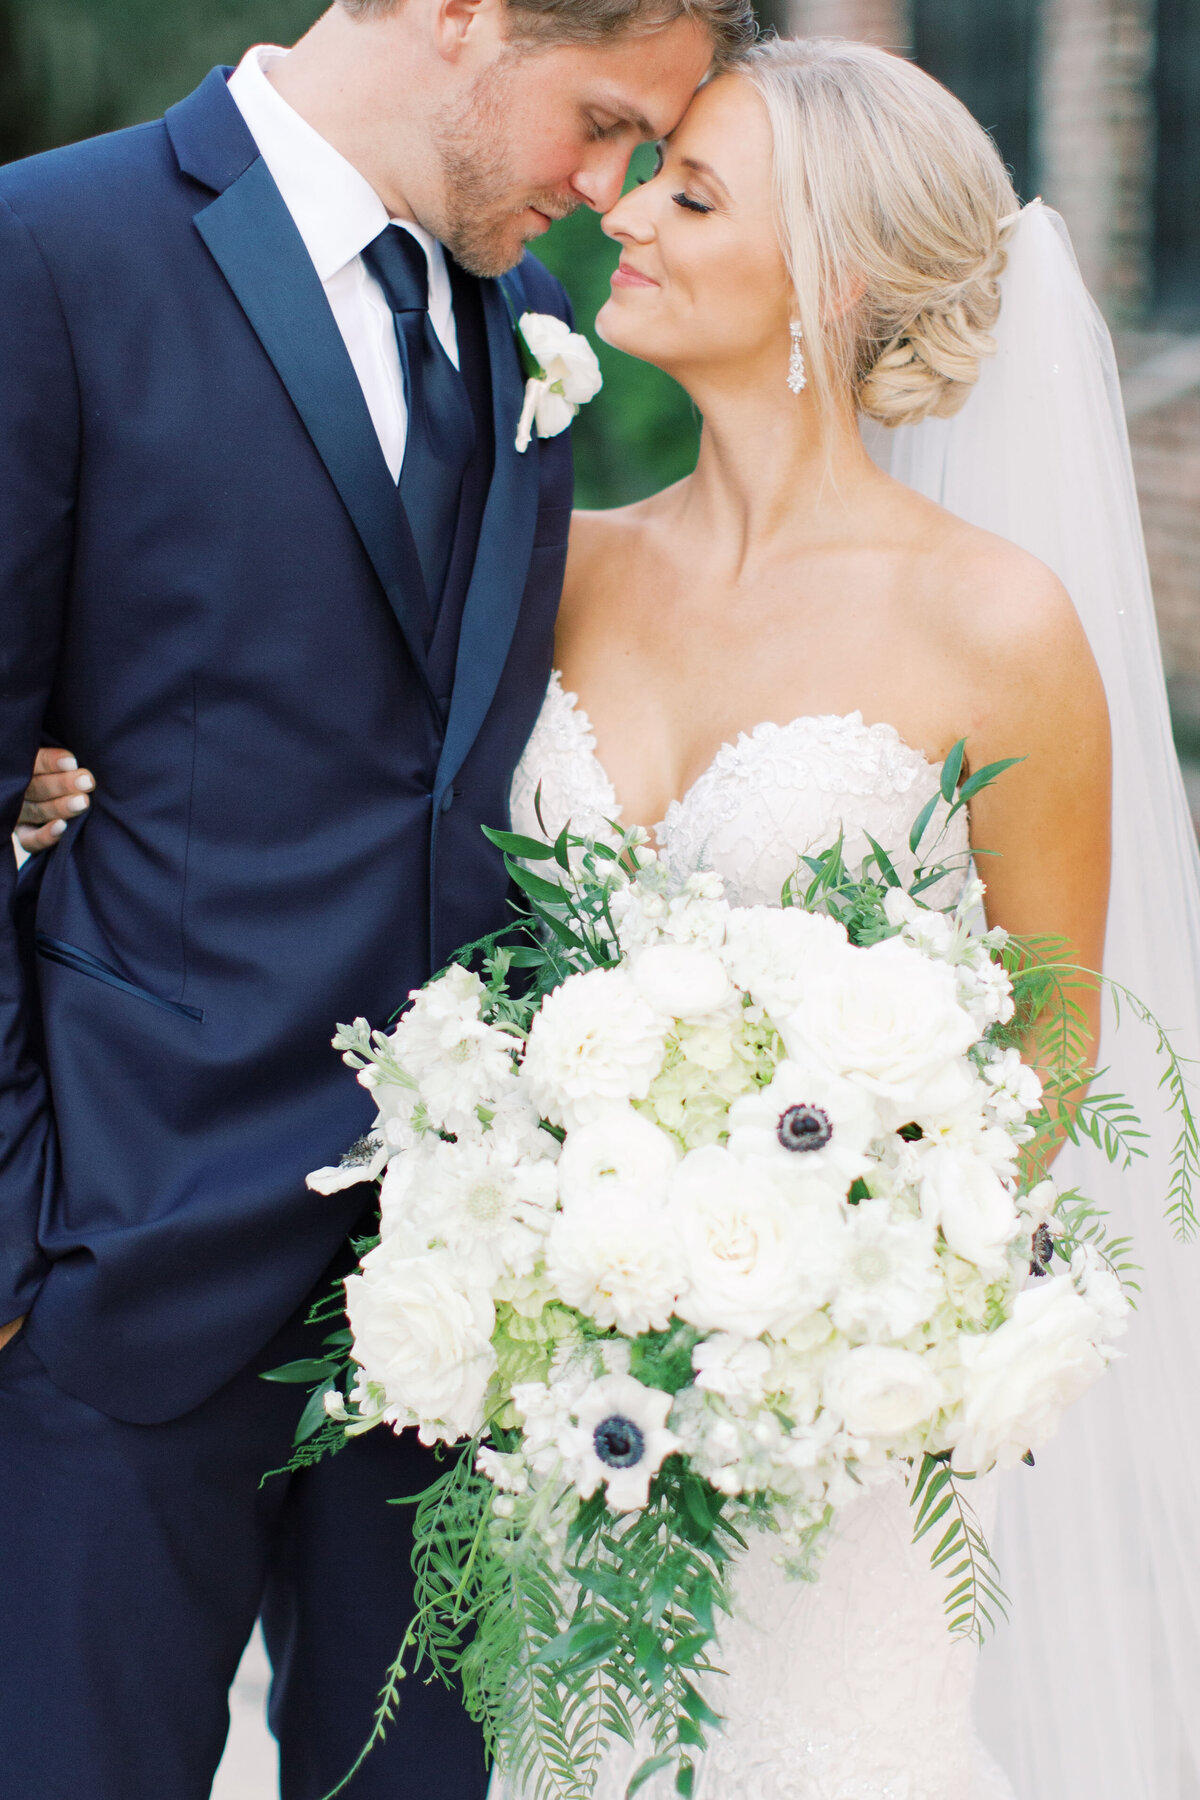 Melton_Wedding__Middleton_Place_Plantation_Charleston_South_Carolina_Jacksonville_Florida_Devon_Donnahoo_Photography__0801